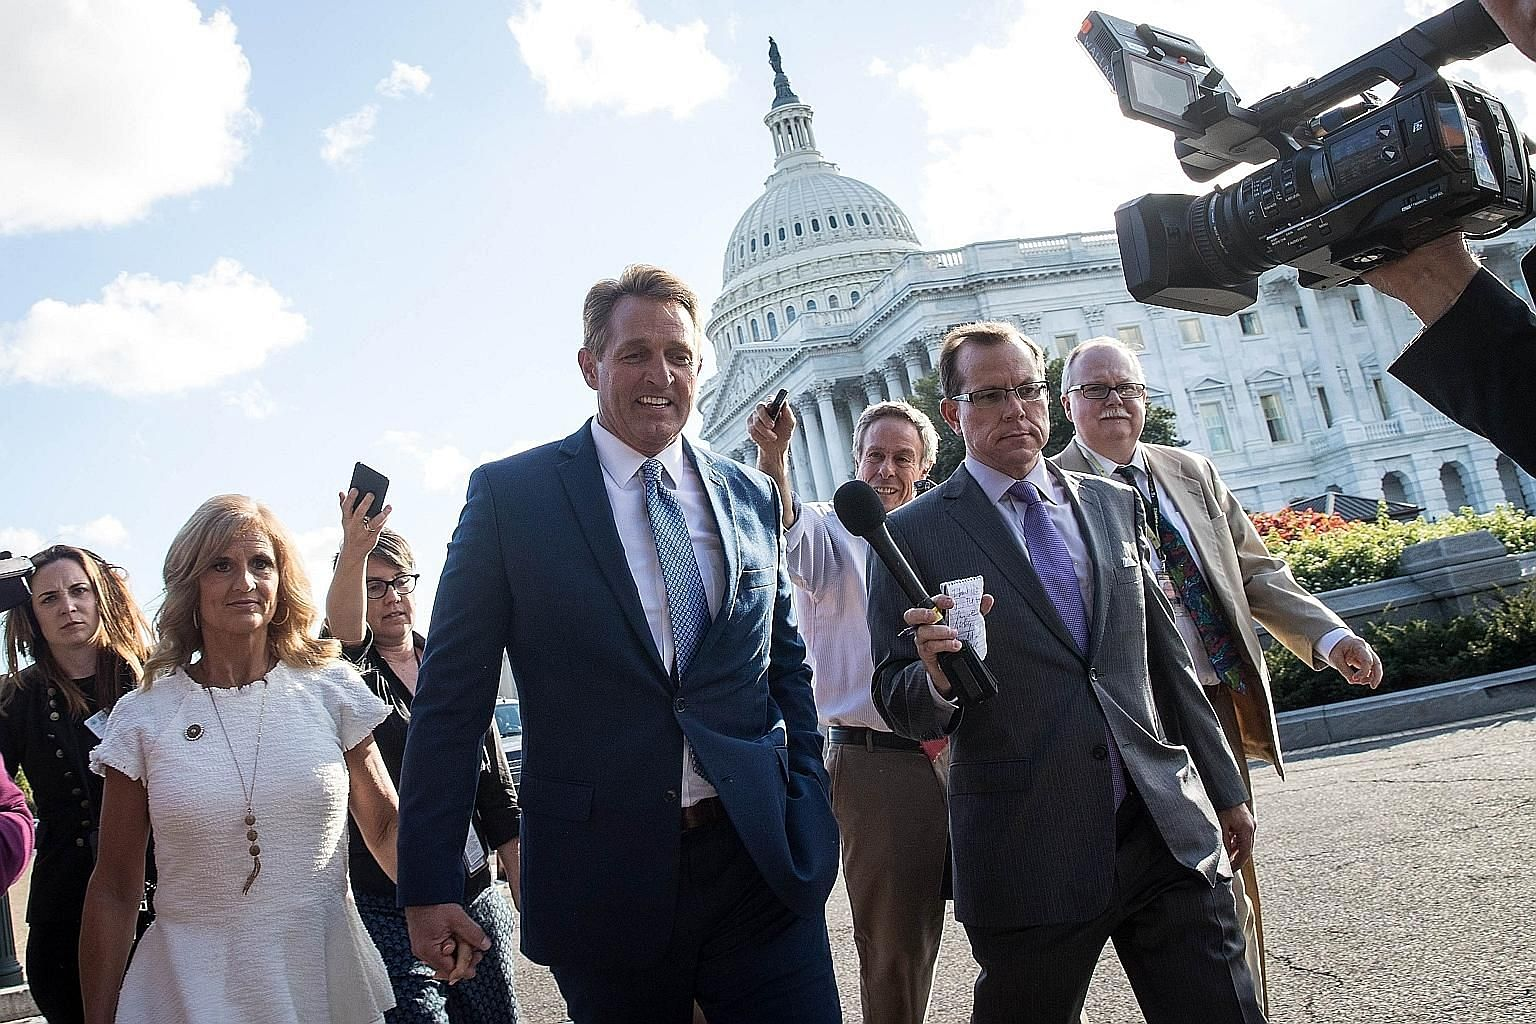 Left: Senator Jeff Flake and his wife, Cheryl, leaving the US Capitol on Tuesday after he announced he would not be seeking re-election. Above: Senator Bob Corker renewed his attack on and war of words with President Donald Trump.